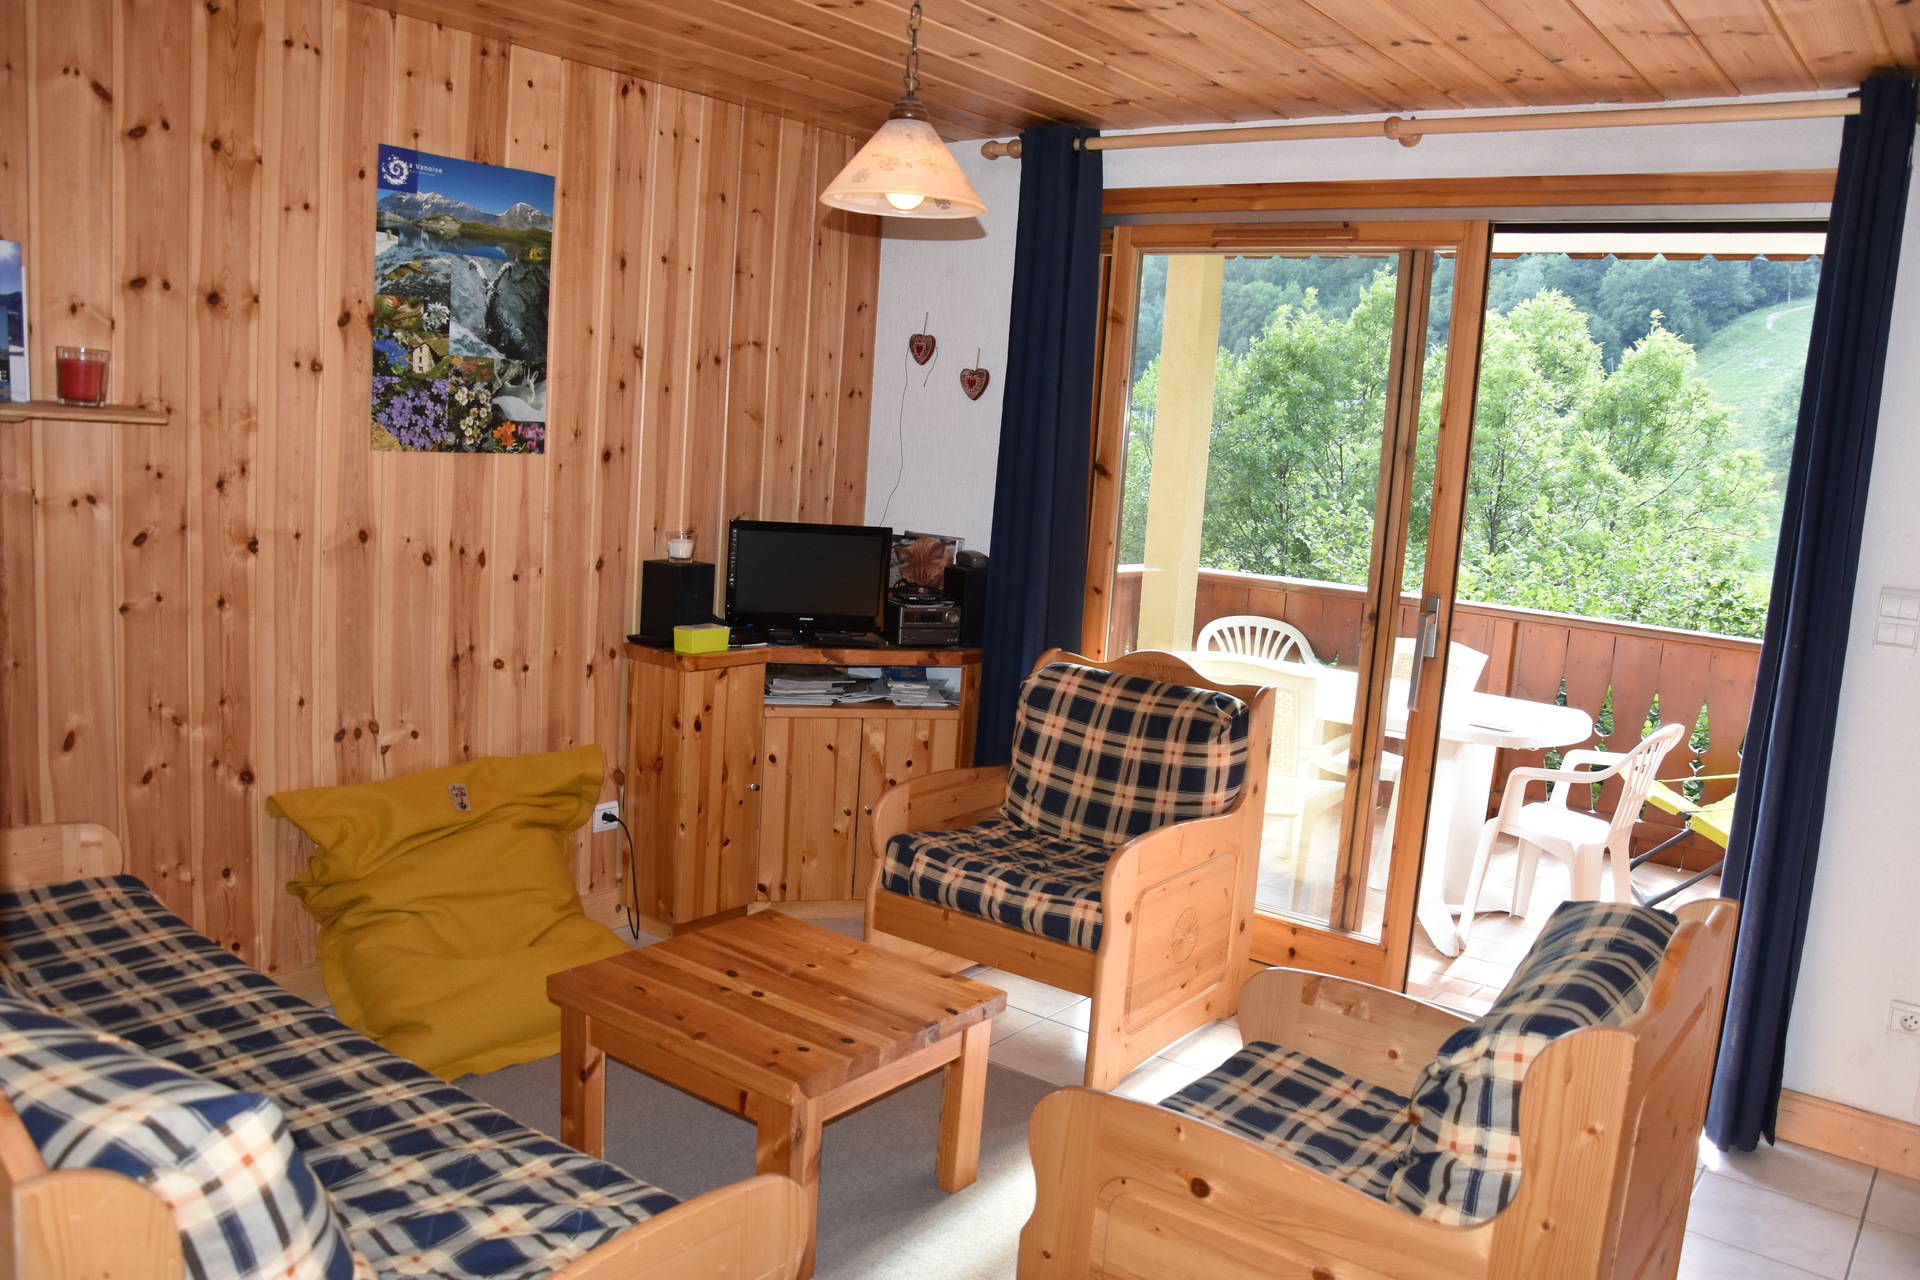 Rental reference : TOUR19 to Champagny en Vanoise